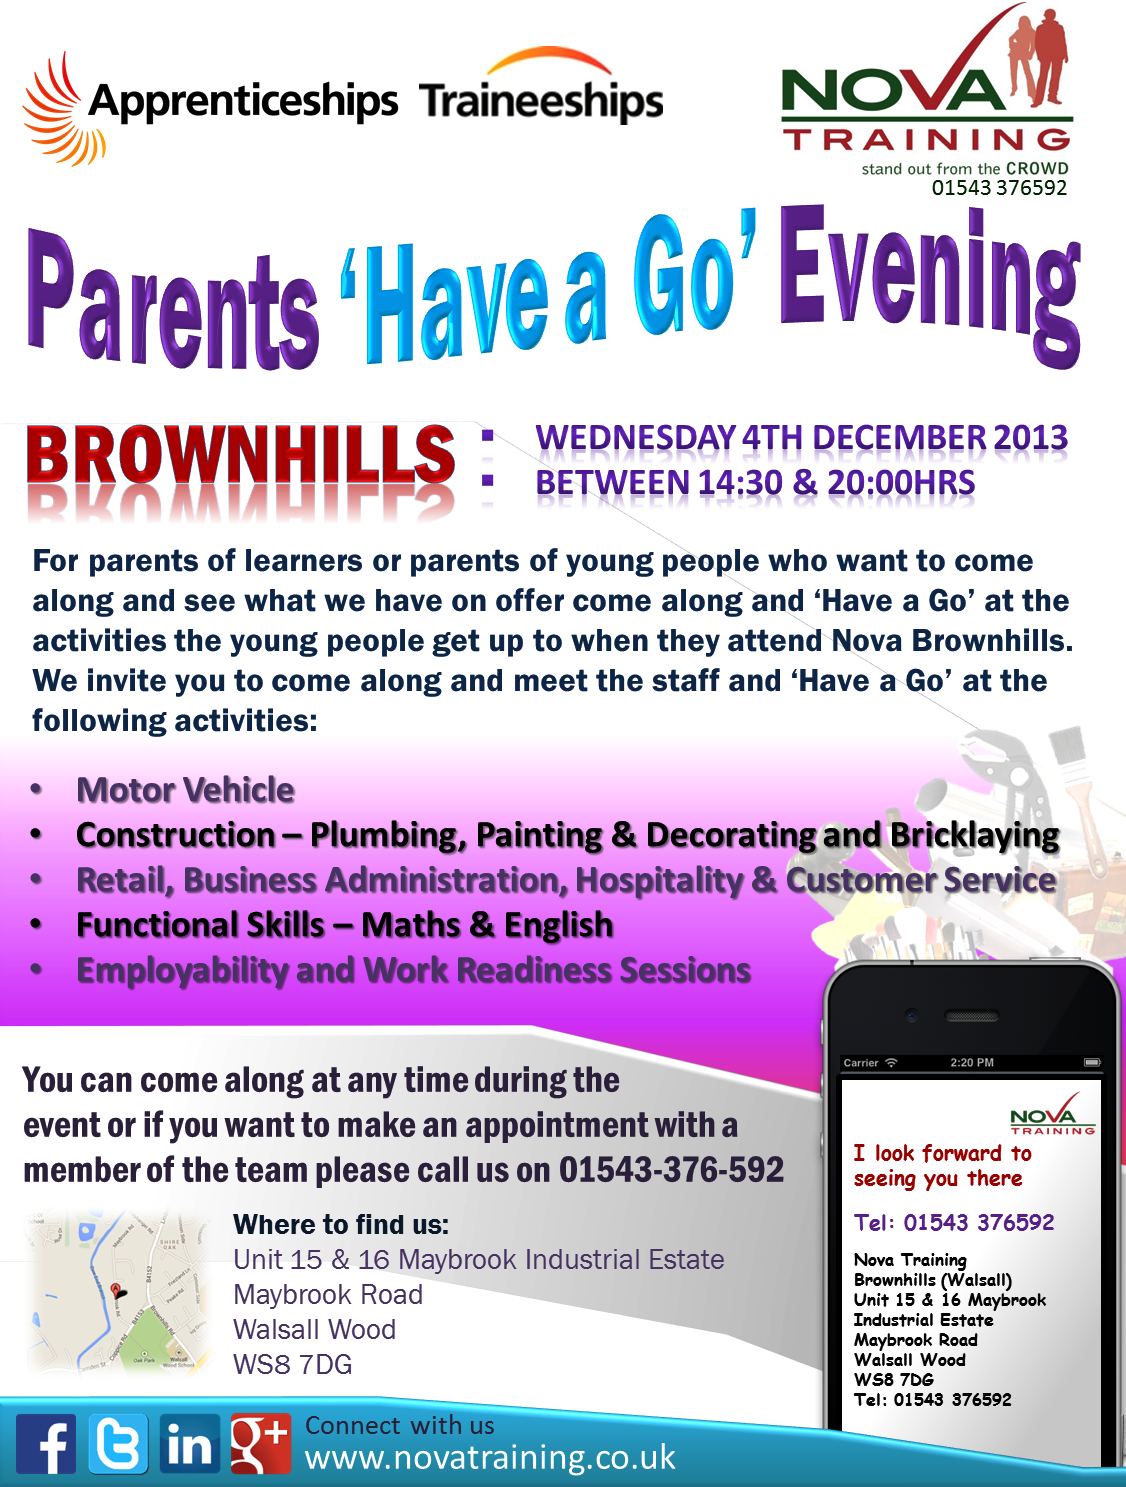 Parents 'Have a Go' Evening in Brownhills on Wednesday 4th December 2013